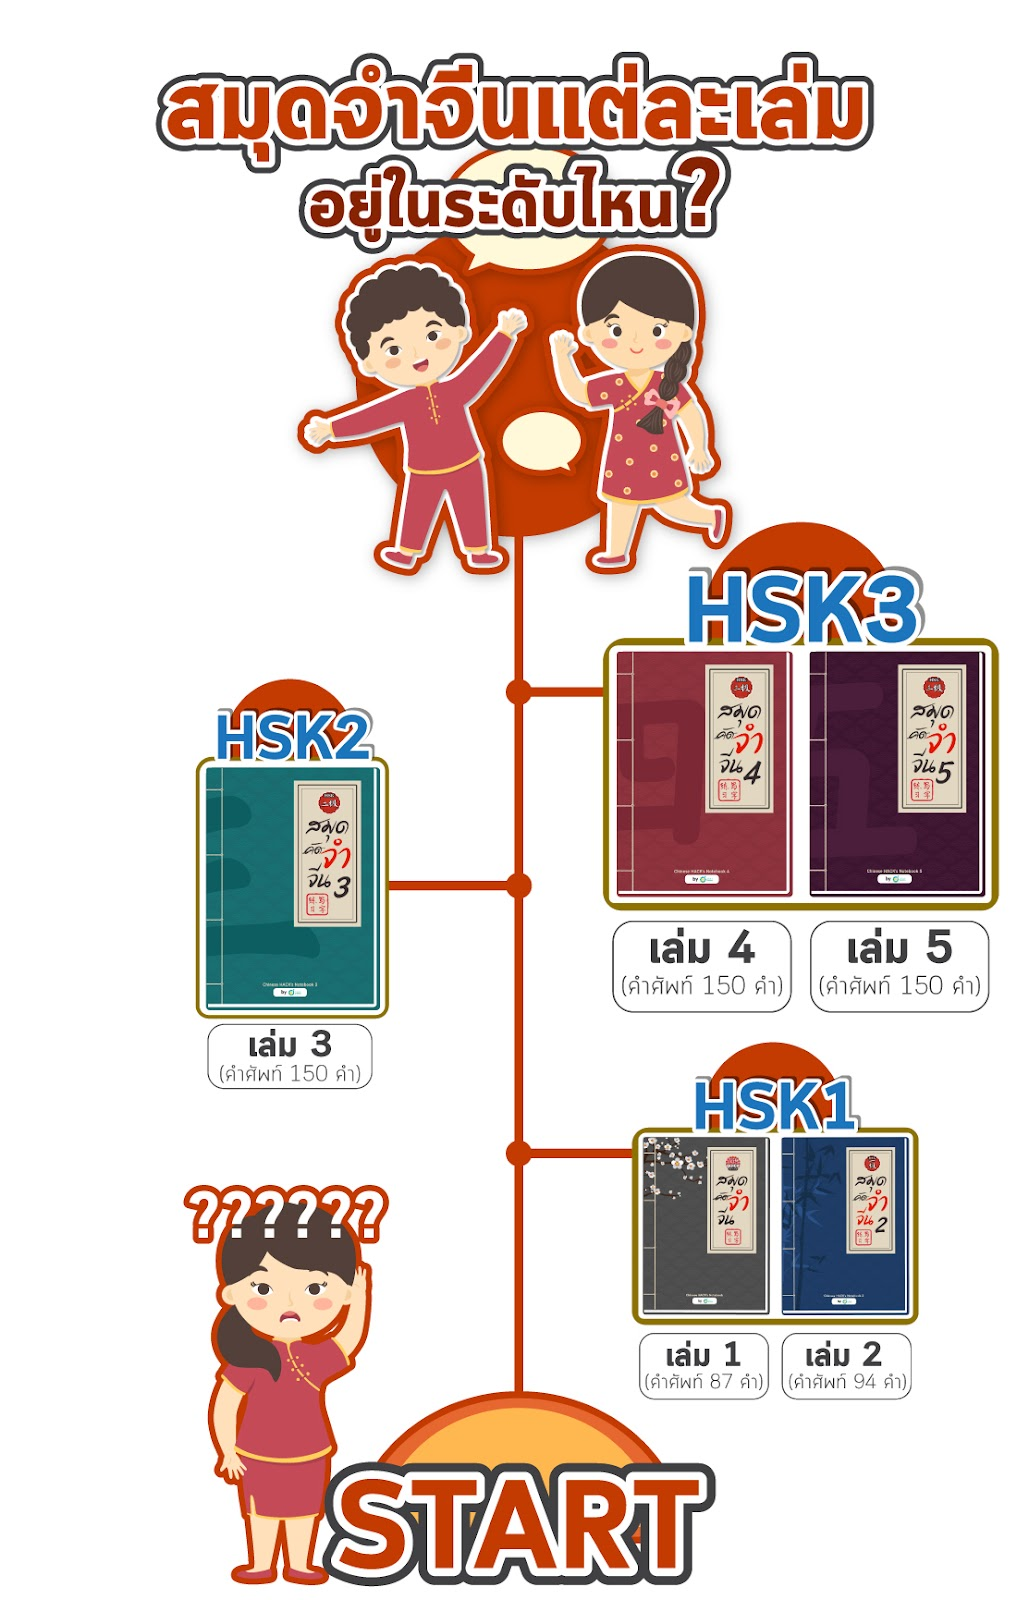 Each Chinese Hack's notebook have different level of Chinese Vocabulary start with HSK1 level till HSK3 level.